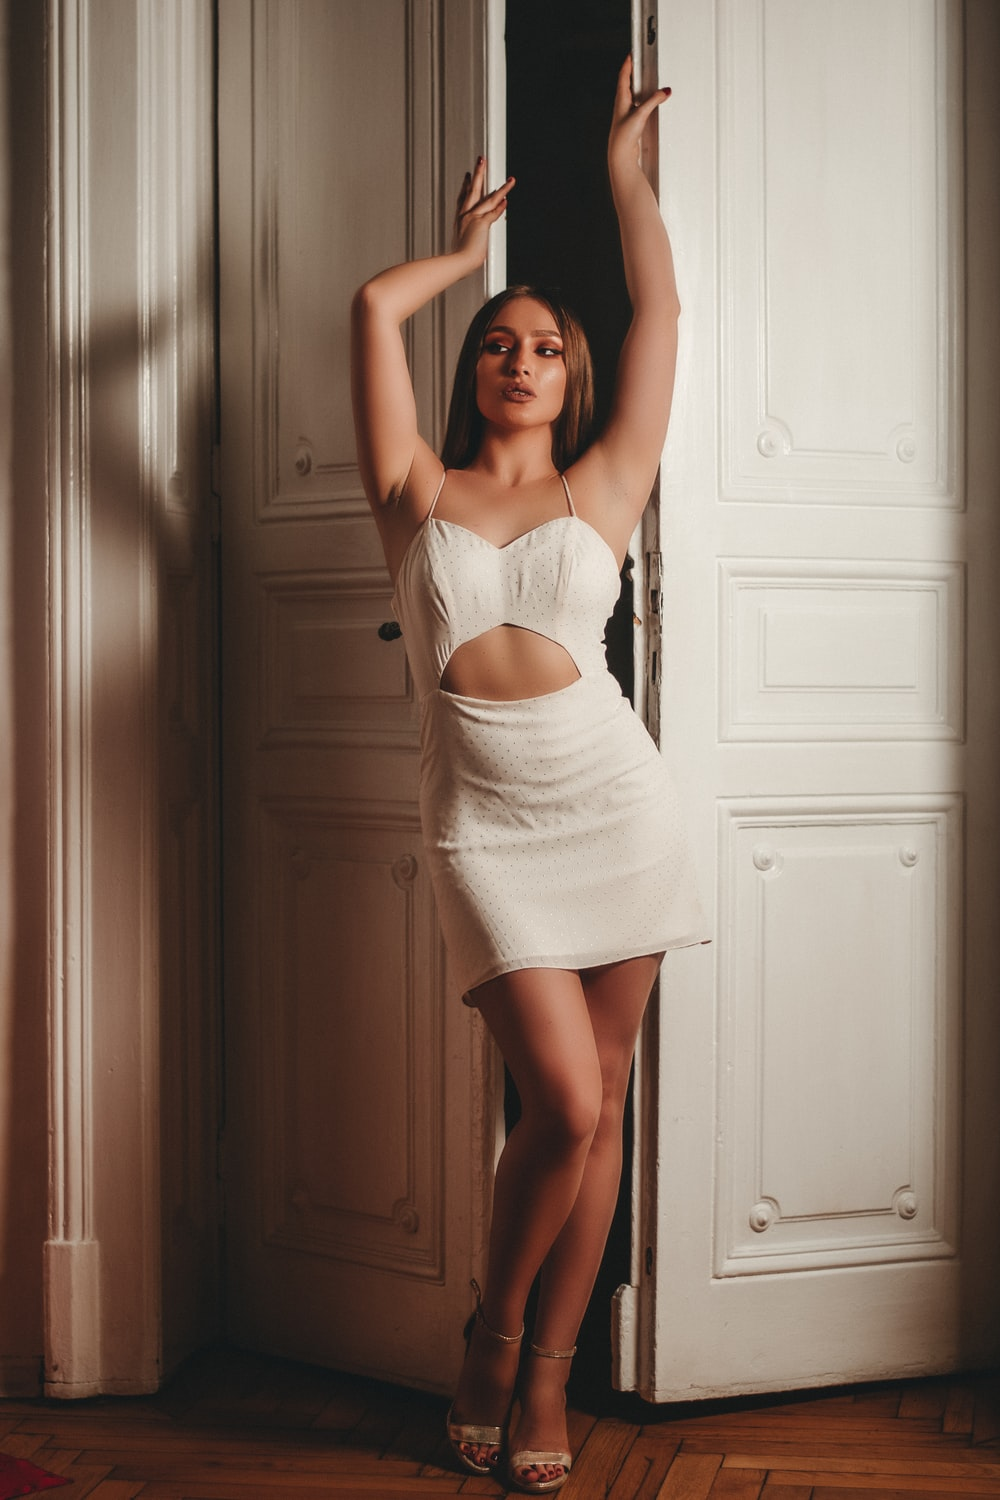 woman in white spaghetti strap top and white skirt standing beside white wooden door